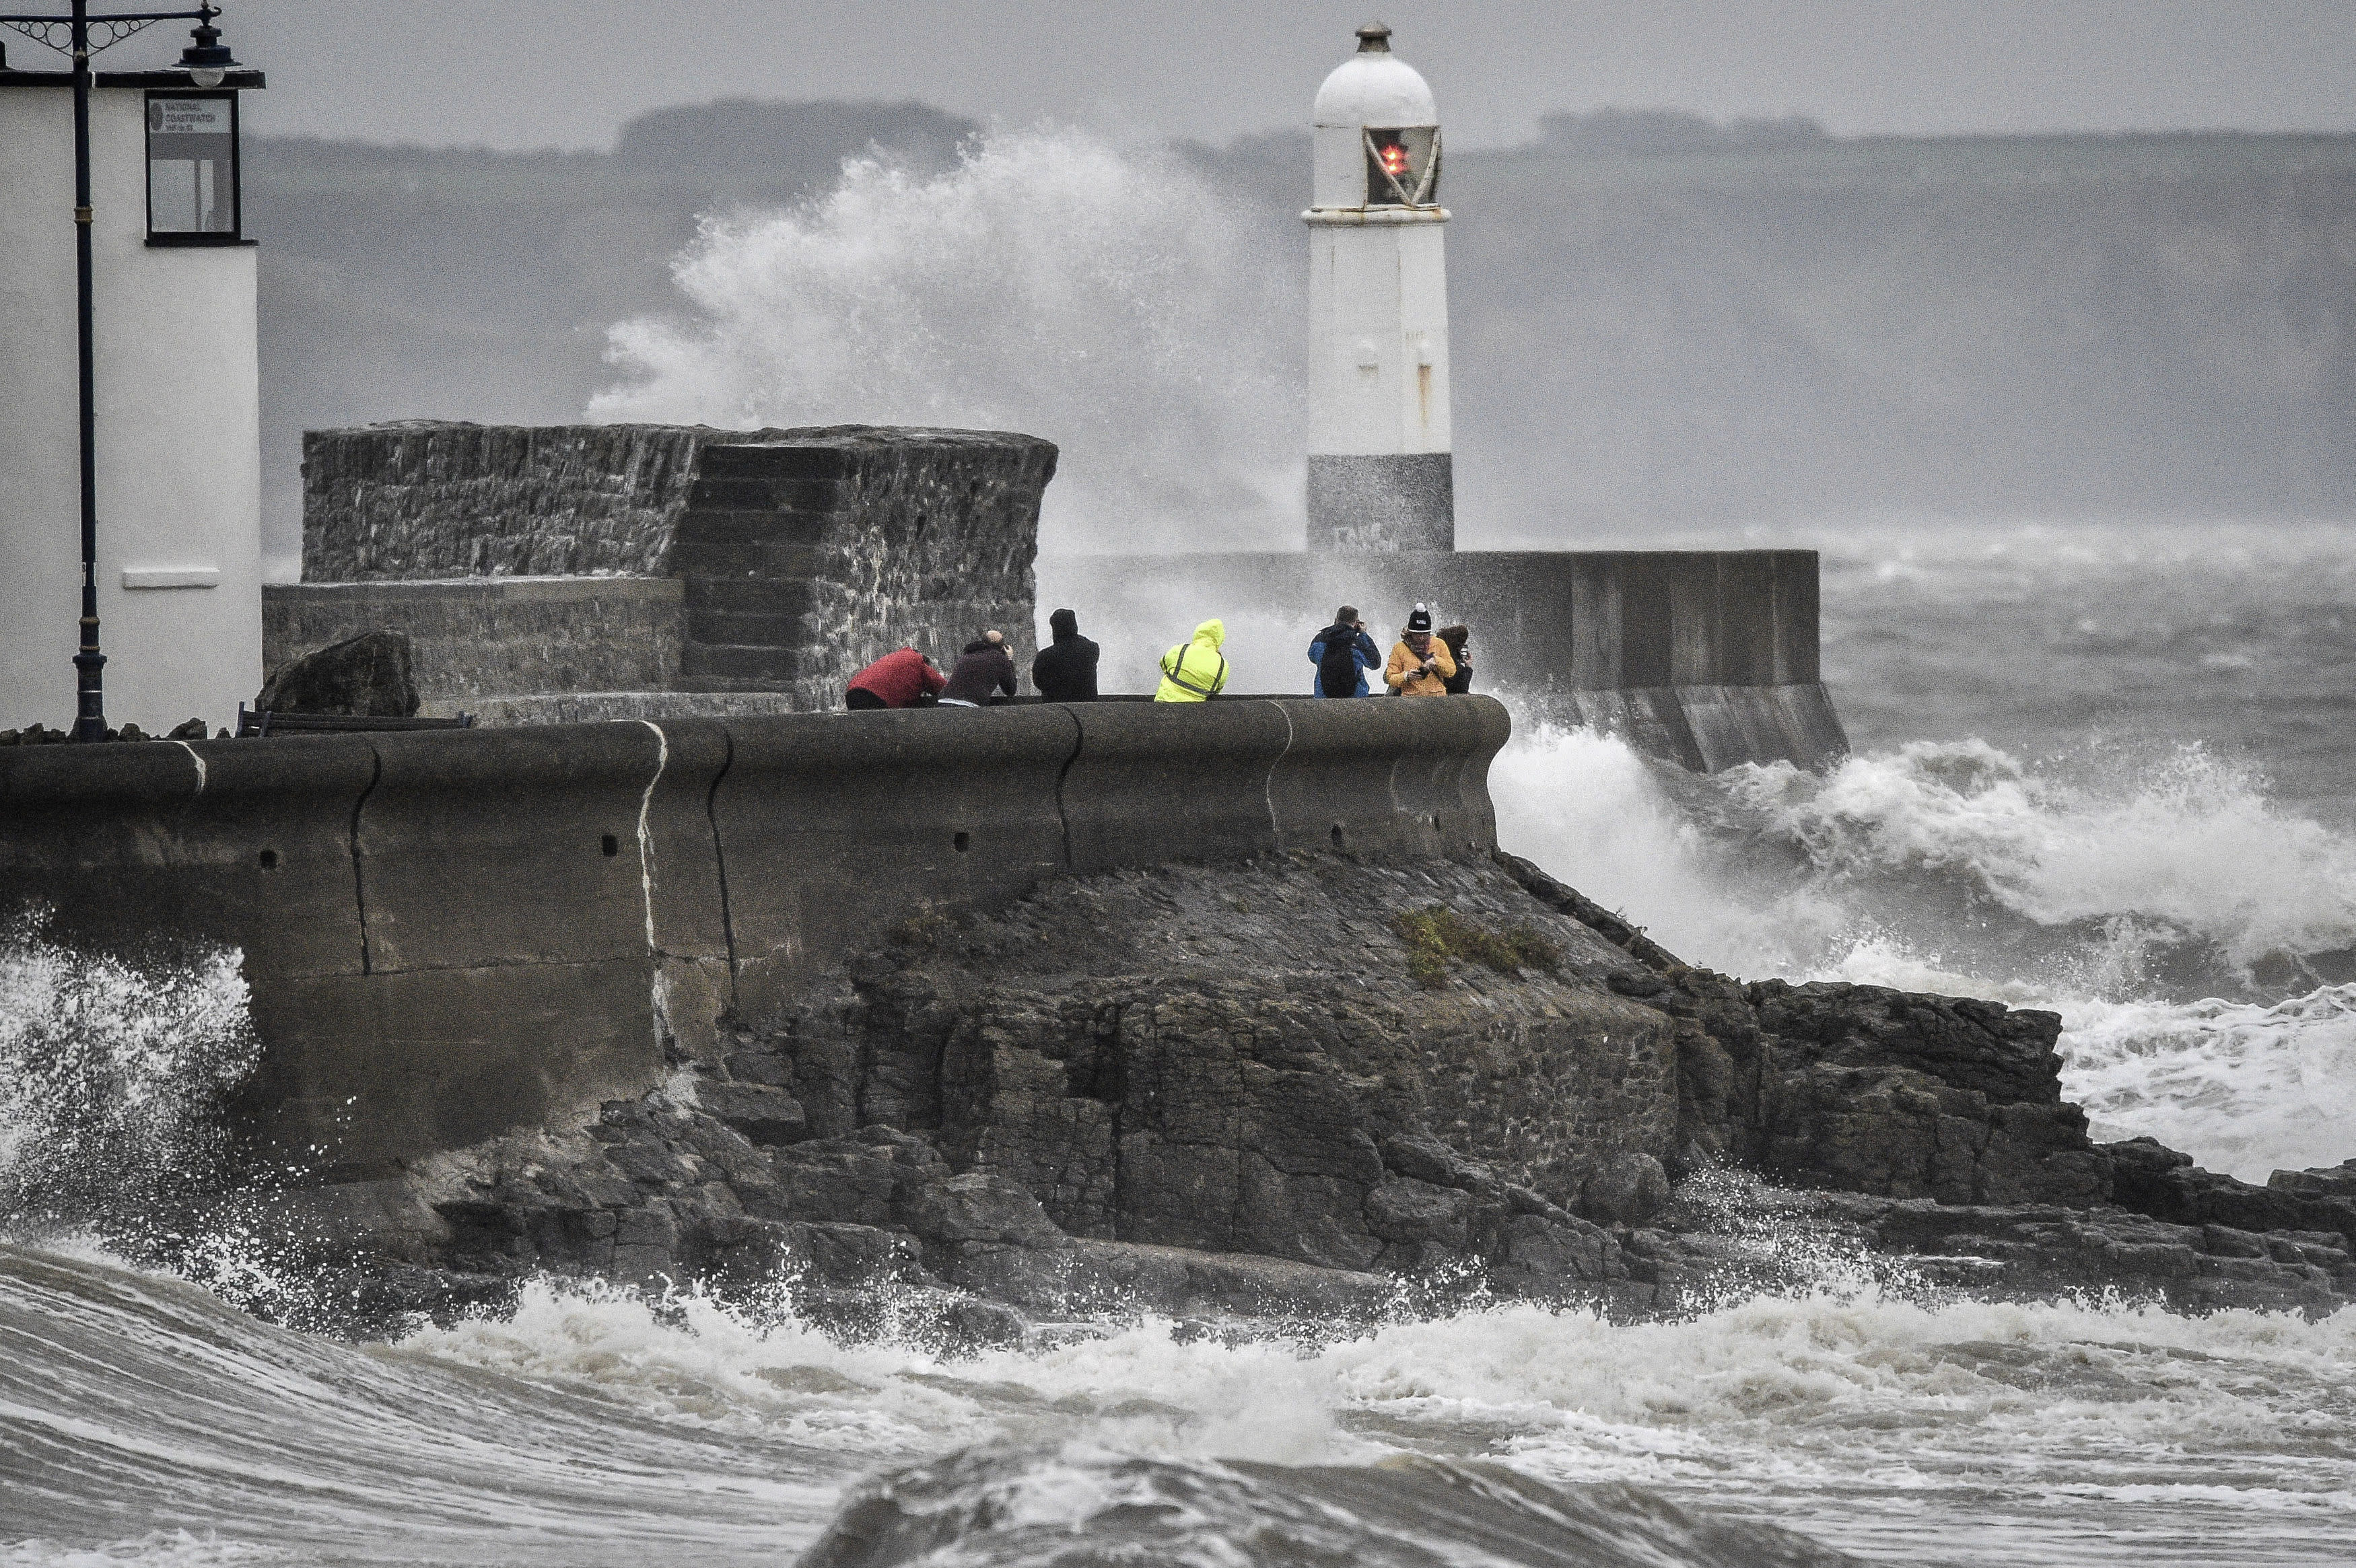 People watch as waves crash against the harbour wall, in Porthcawl, South Wales, Saturday, Oct. 13, 2018. (Ben Birchall/PA via AP)